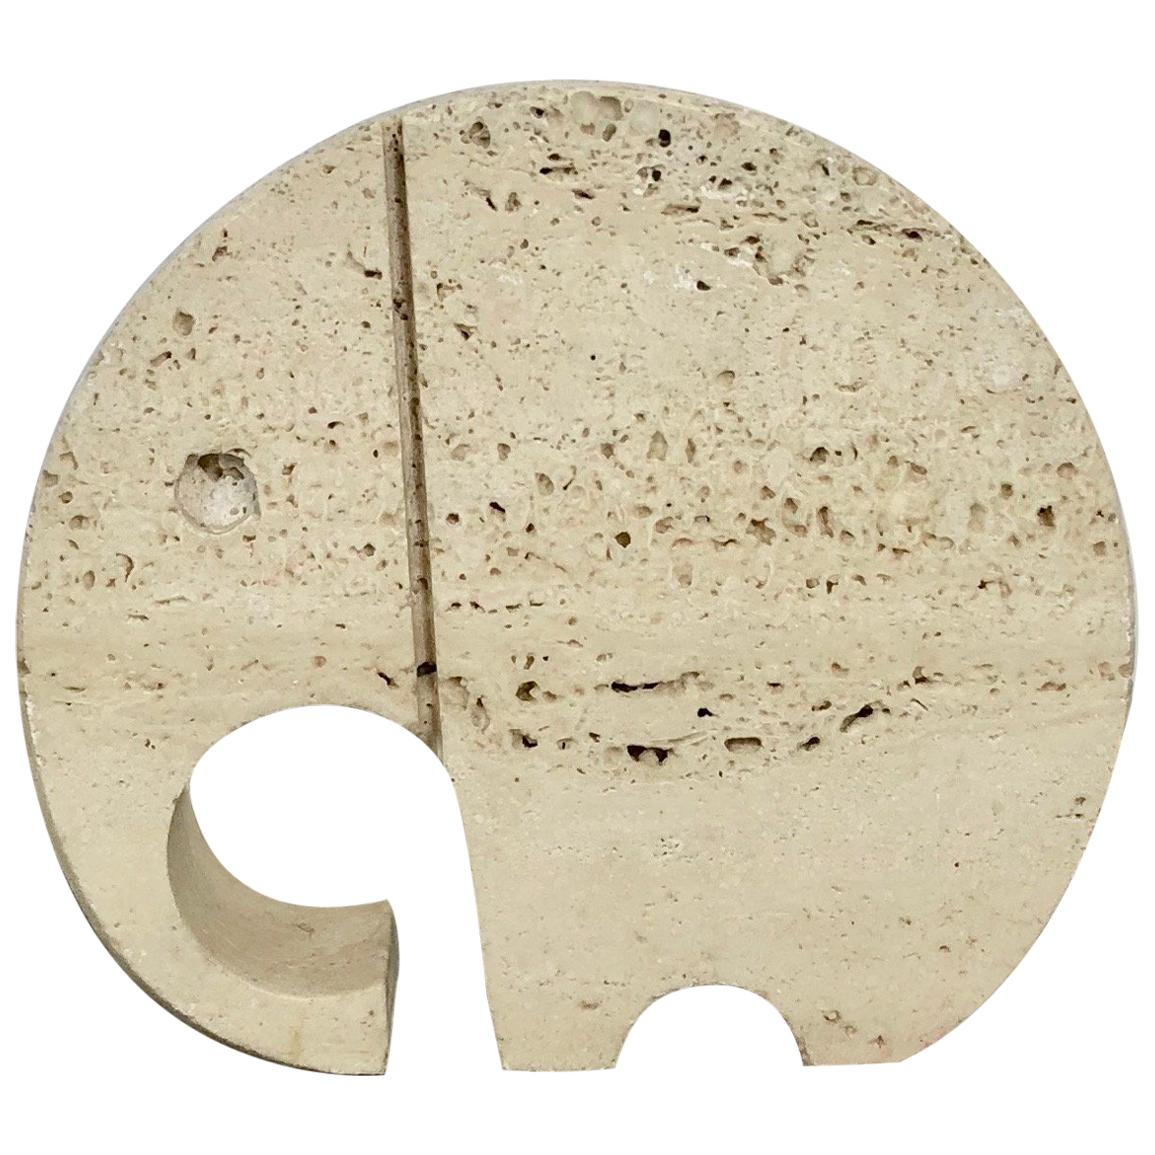 Fratelli Mannelli Travertine Elephant Letter Holder Sculpture Minimalist Italy